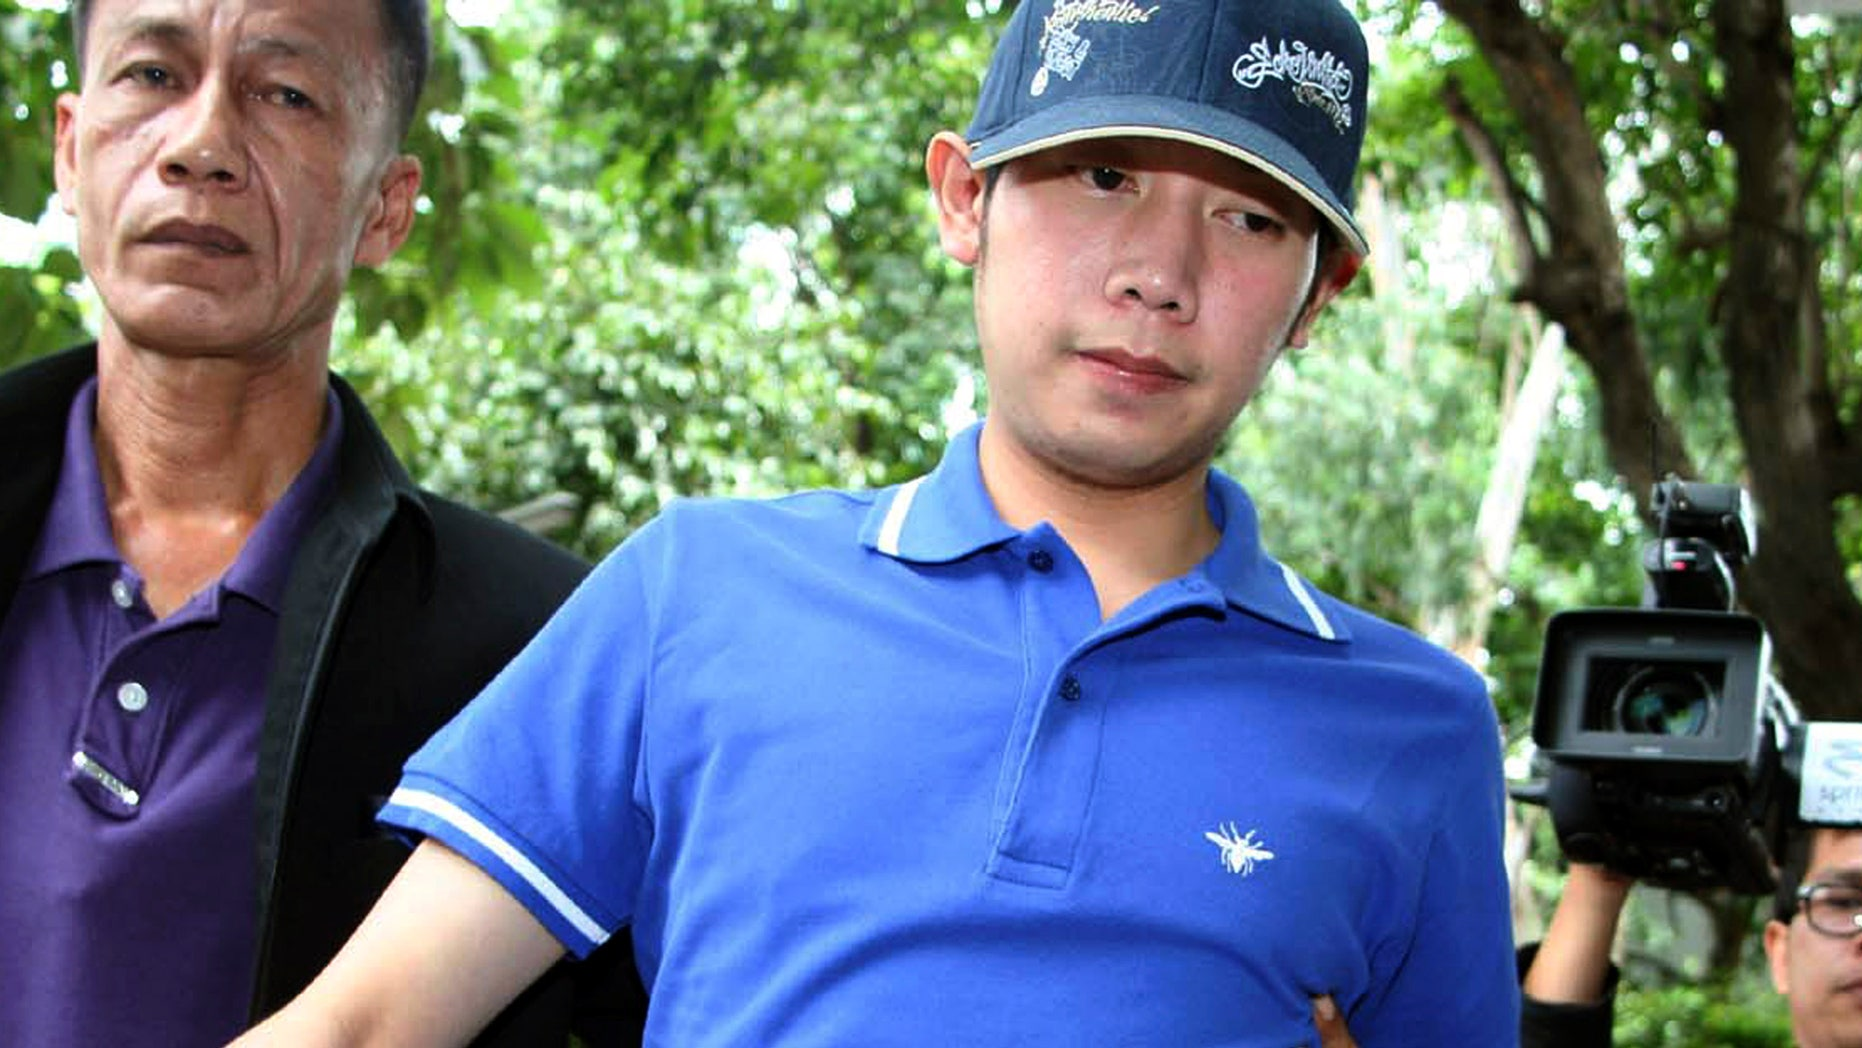 Sept. 3, 2012: Vorayuth Yoovidhya, a grandson of late Red Bull founder Chaleo Yoovidhaya, is taken by a plain-clothes police officer for investigation in Bangkok, Thailand.